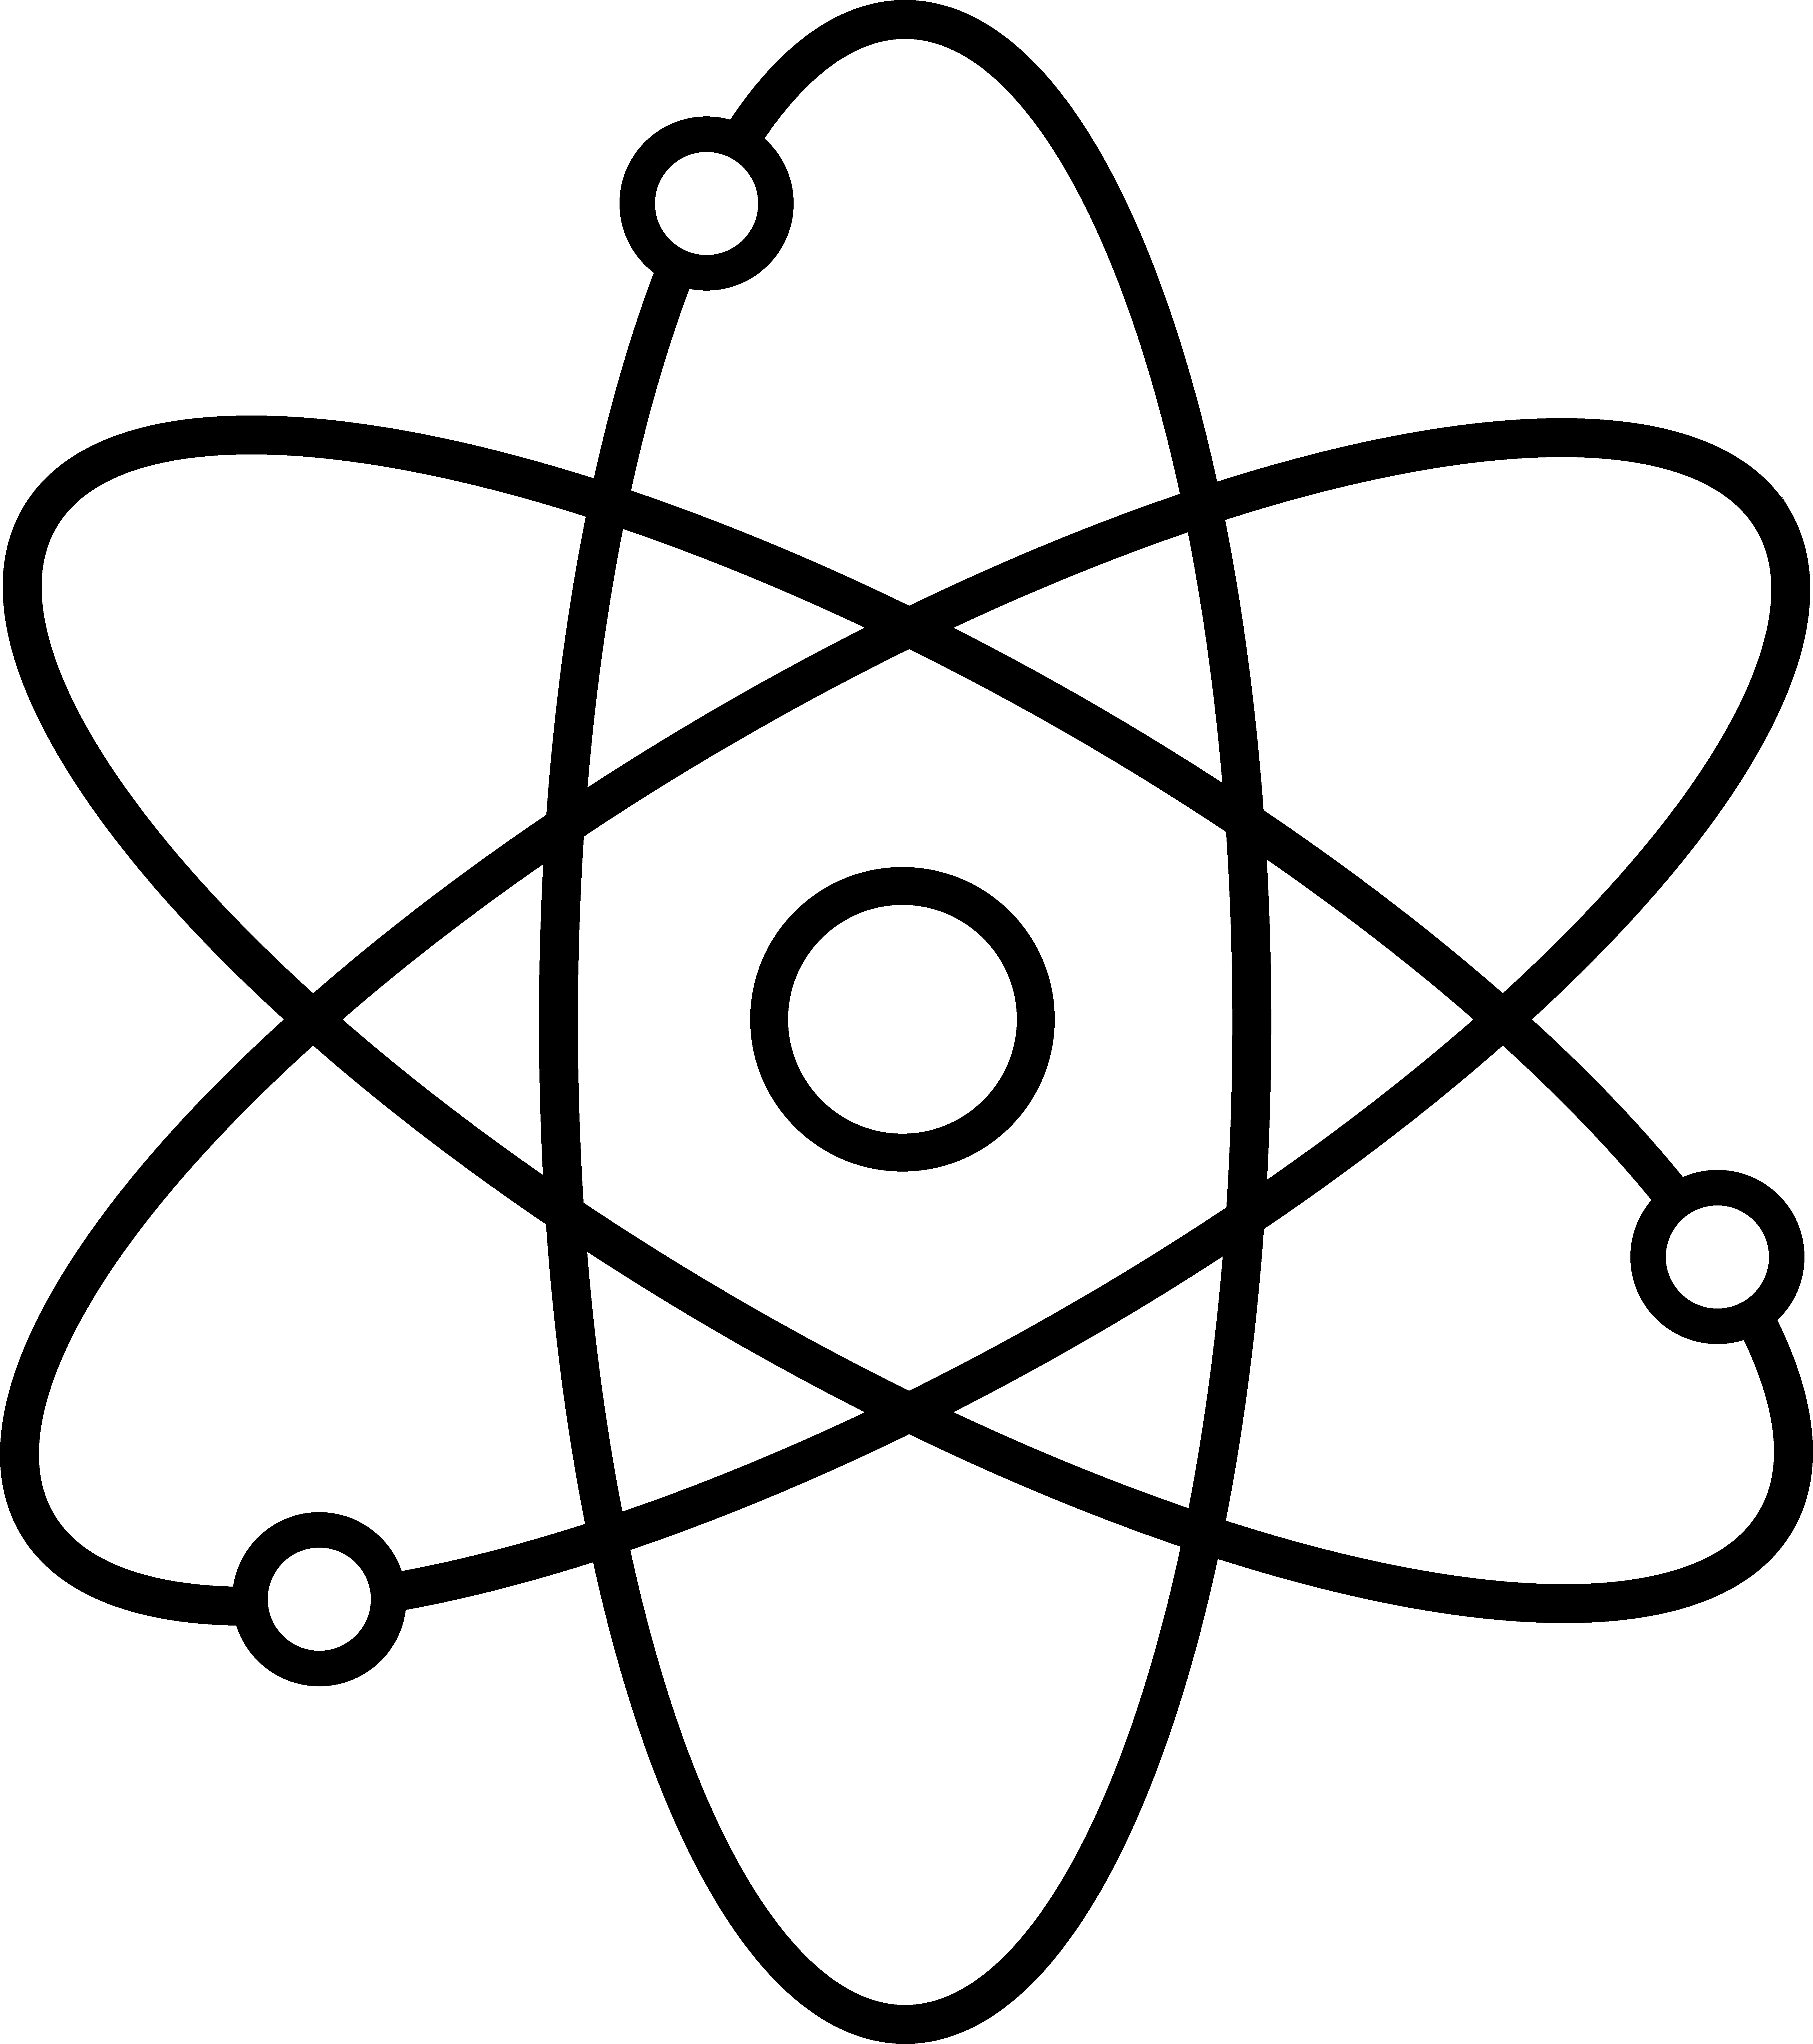 6792x7659 Image Of Atom Clipart